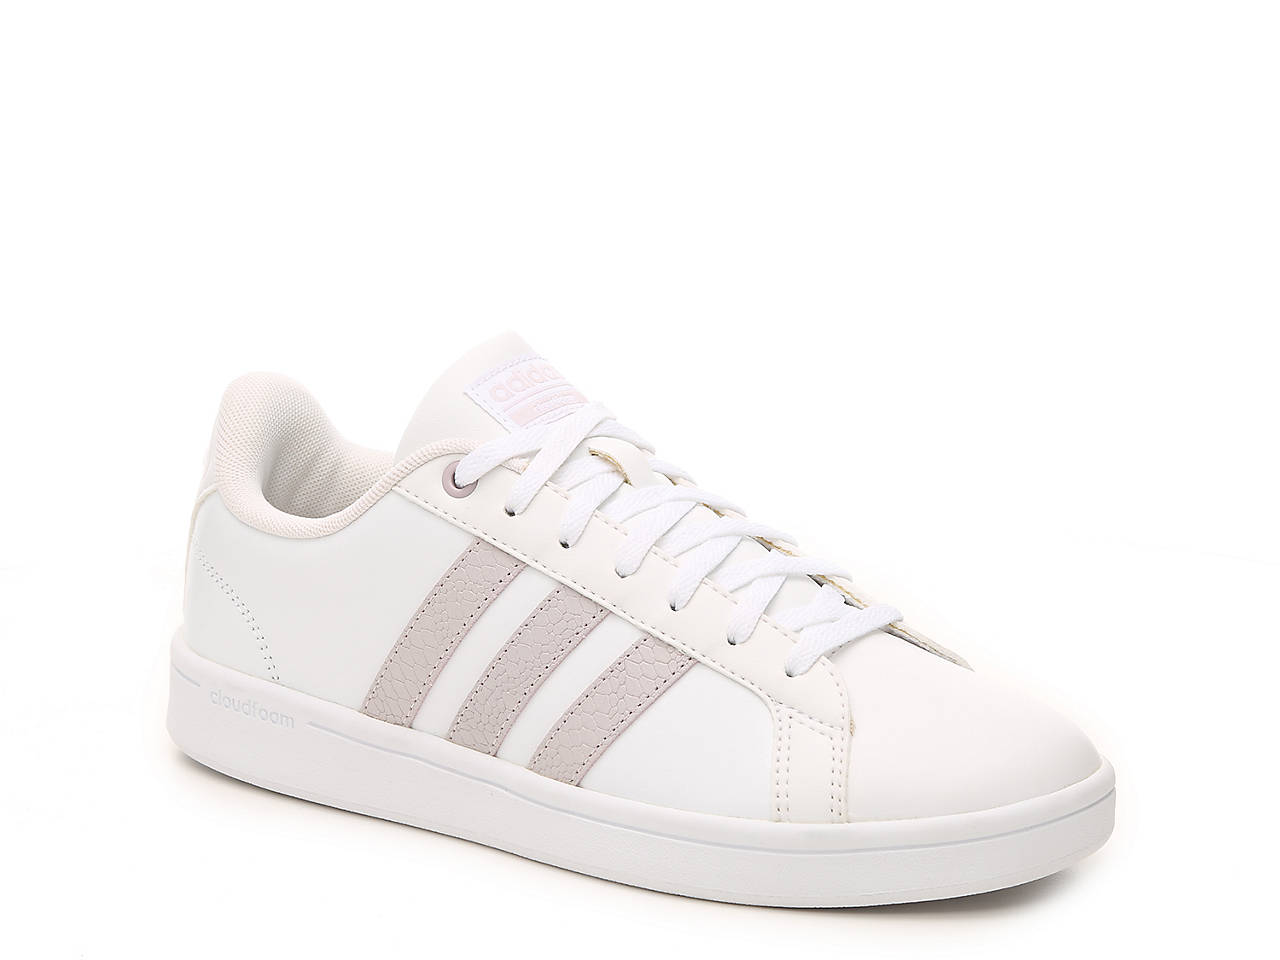 a5adbabaea75 adidas Advantage Sneaker - Women s Women s Shoes